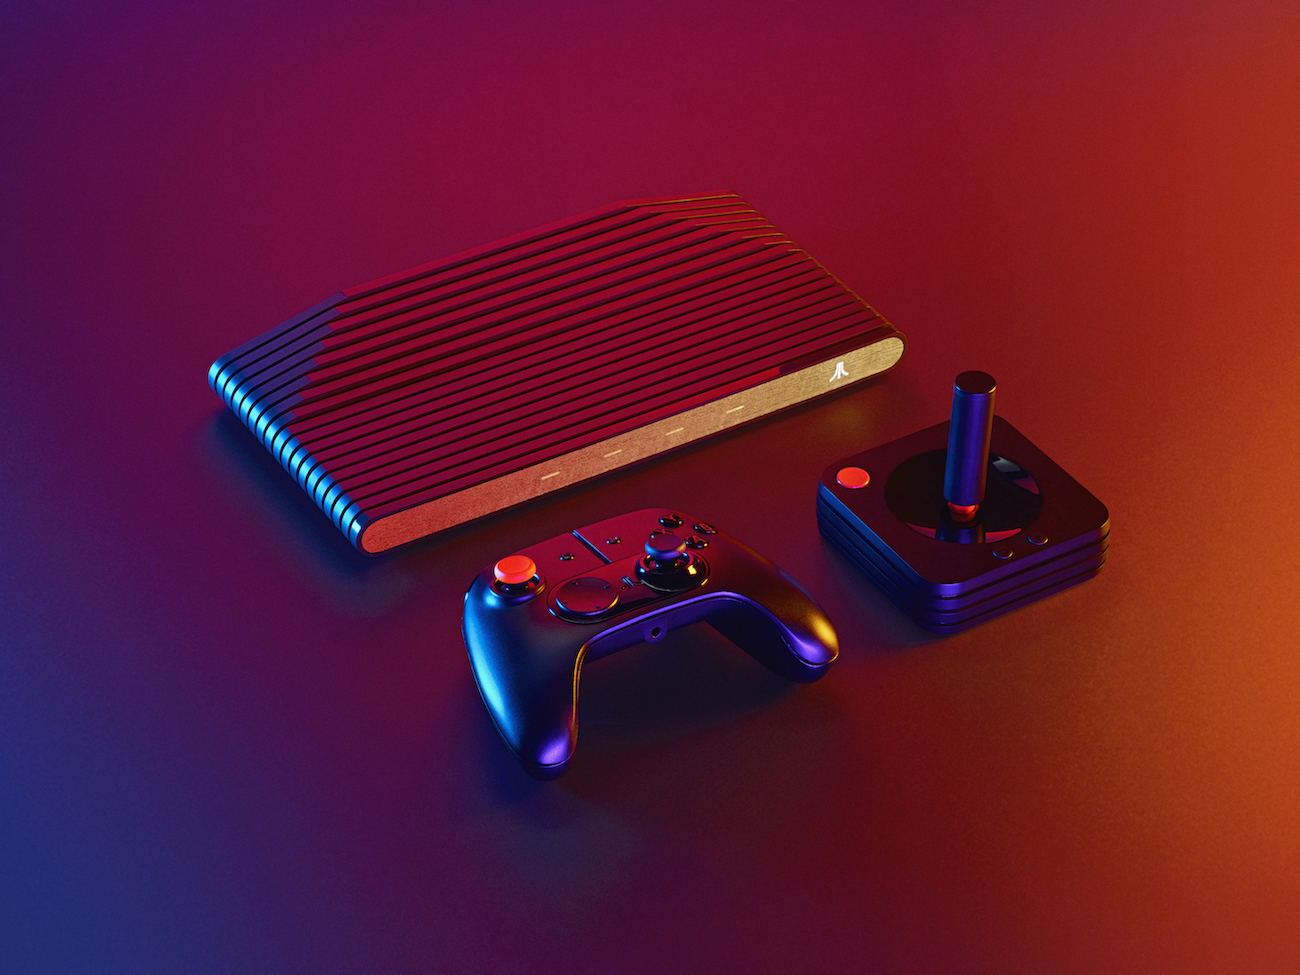 05162018_Atari_Stylized_GROUP_STACKED_03_FINAL